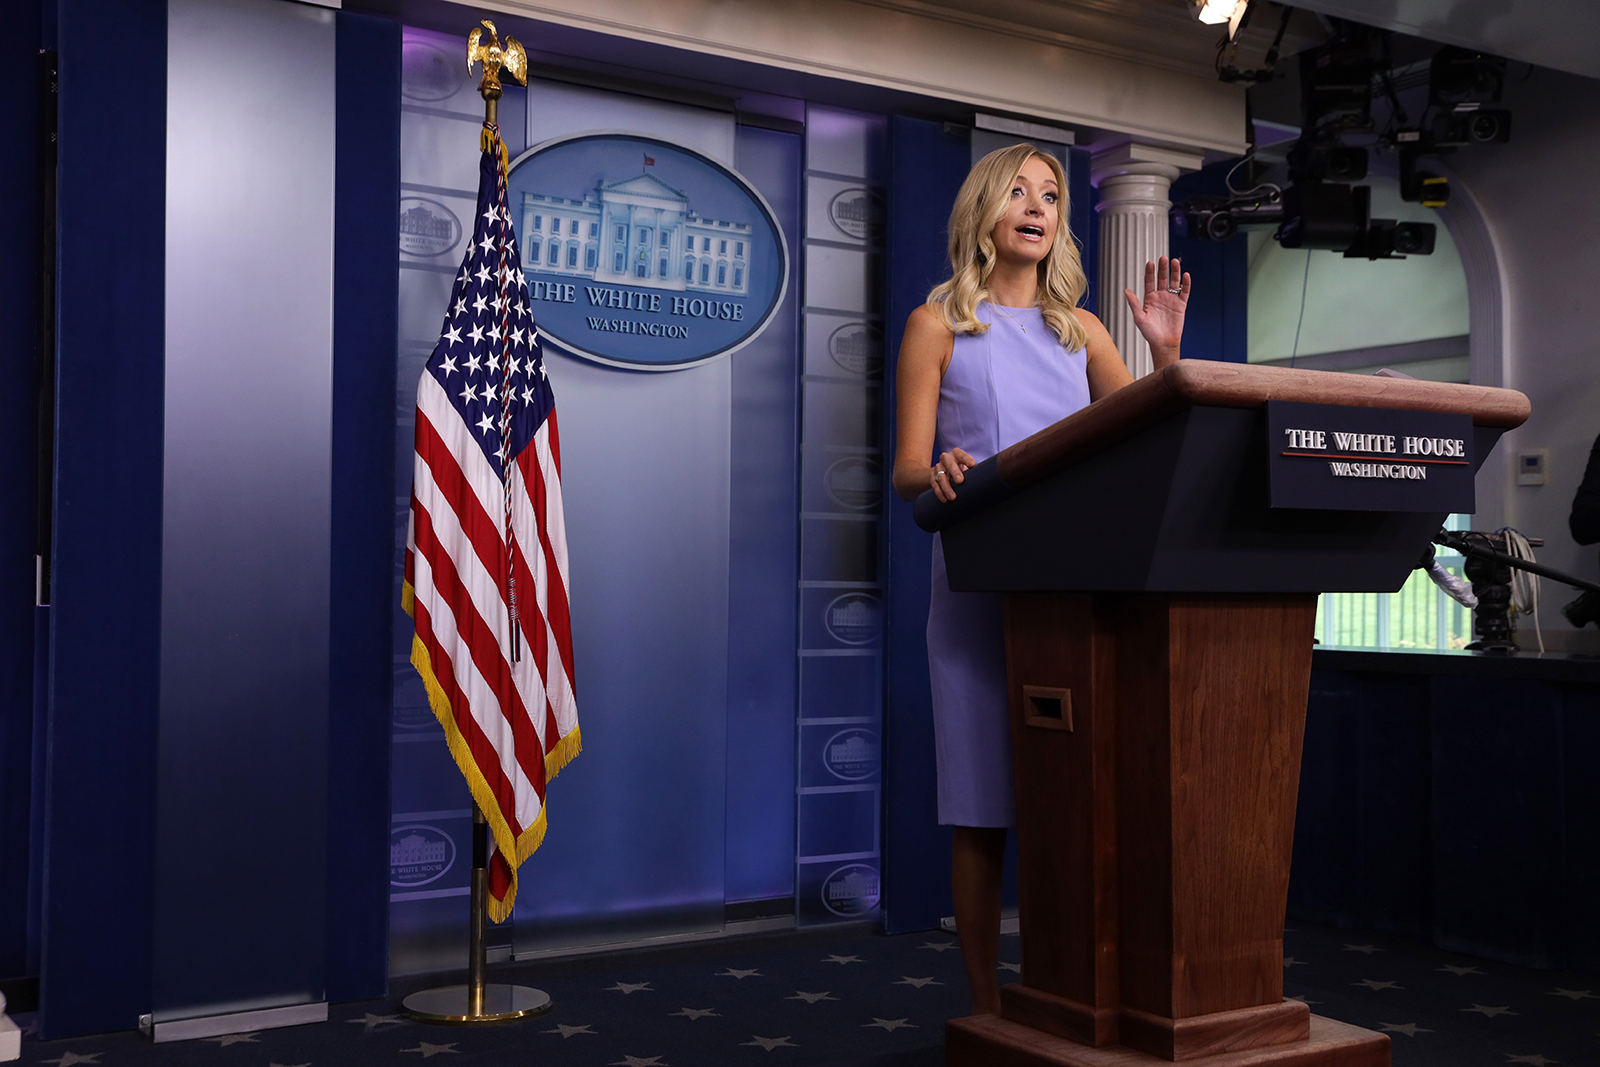 White House spokeswoman Kayleigh McEnany speaks during an information briefing at the White House in Washington on June 17.